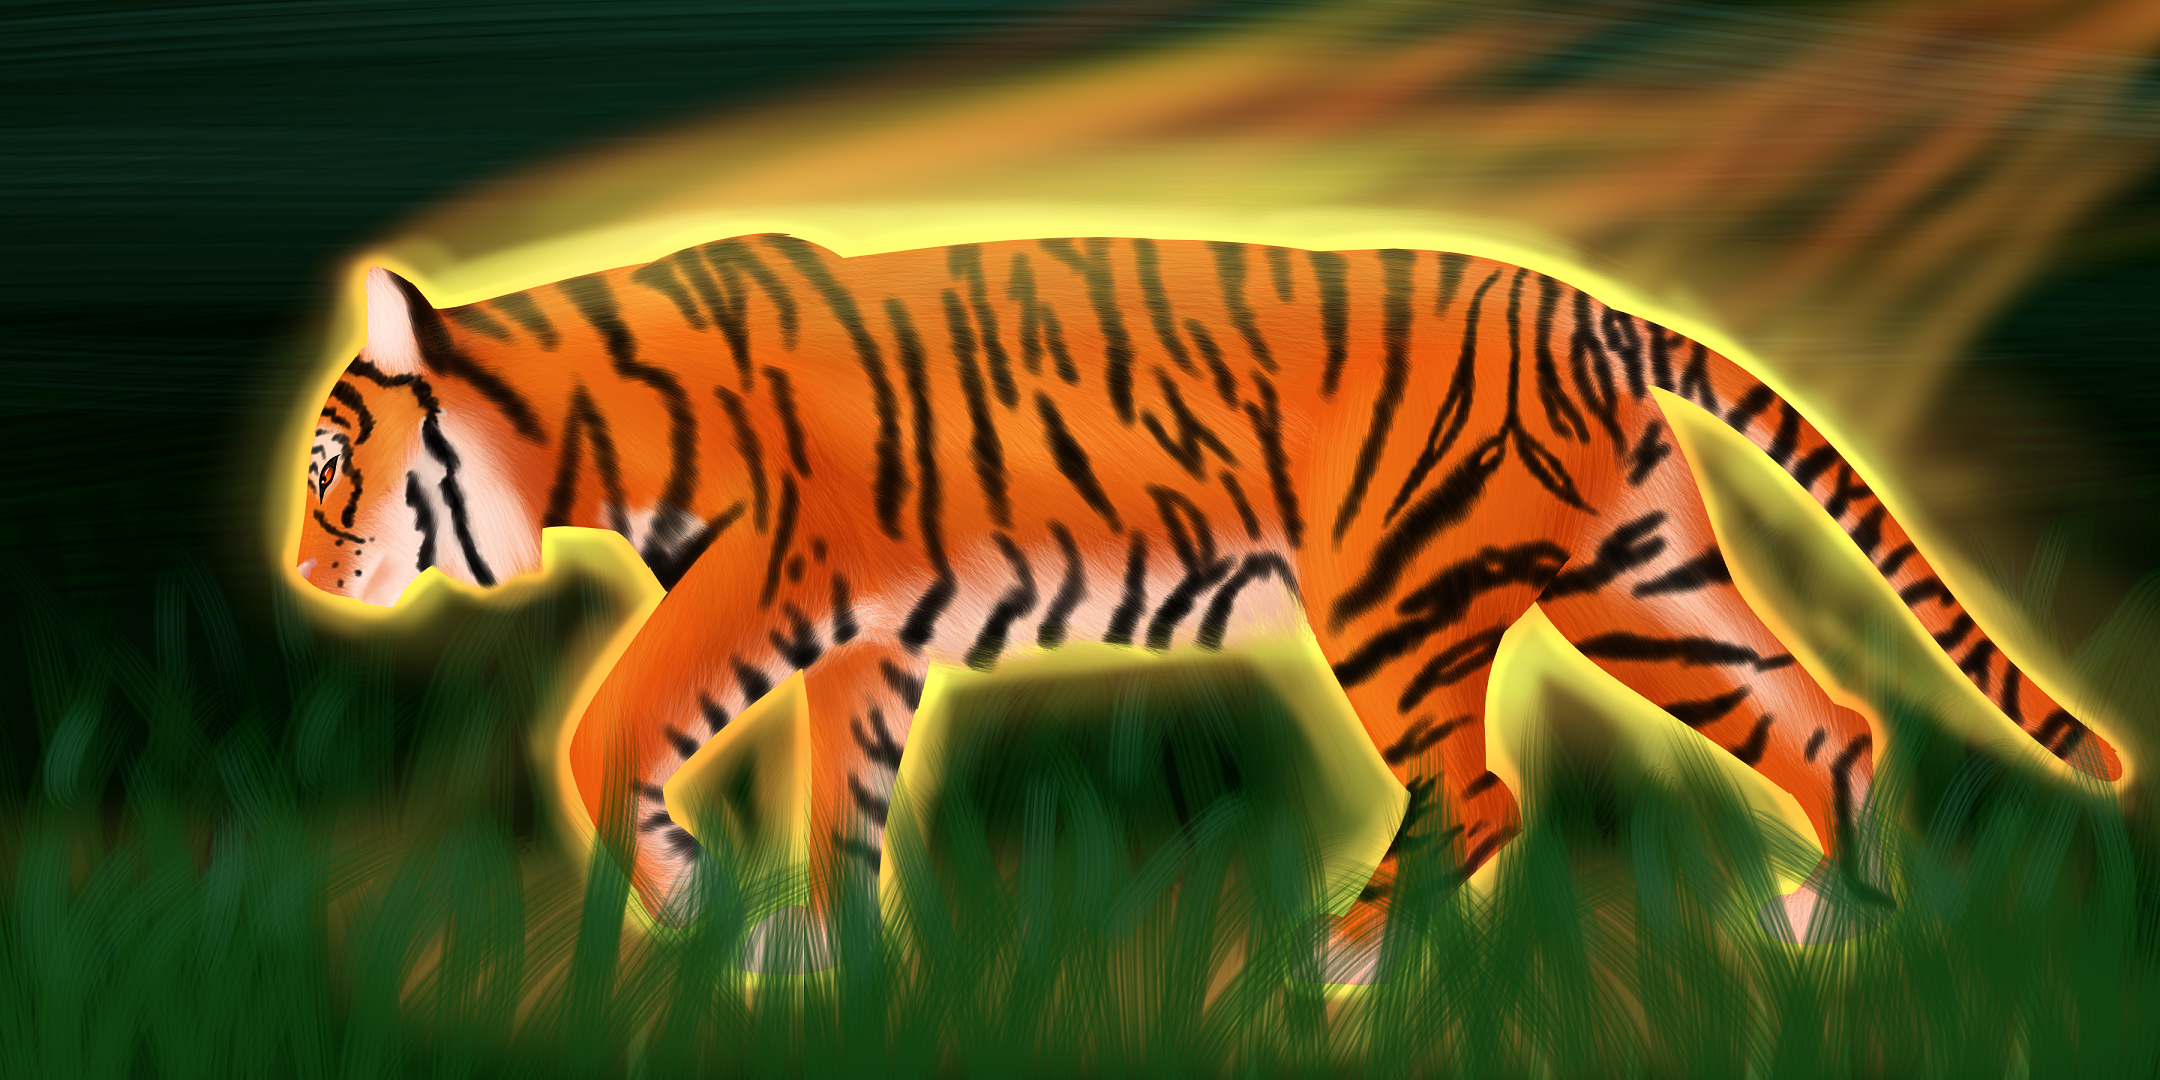 Tyger! Tyger! Burning Bright